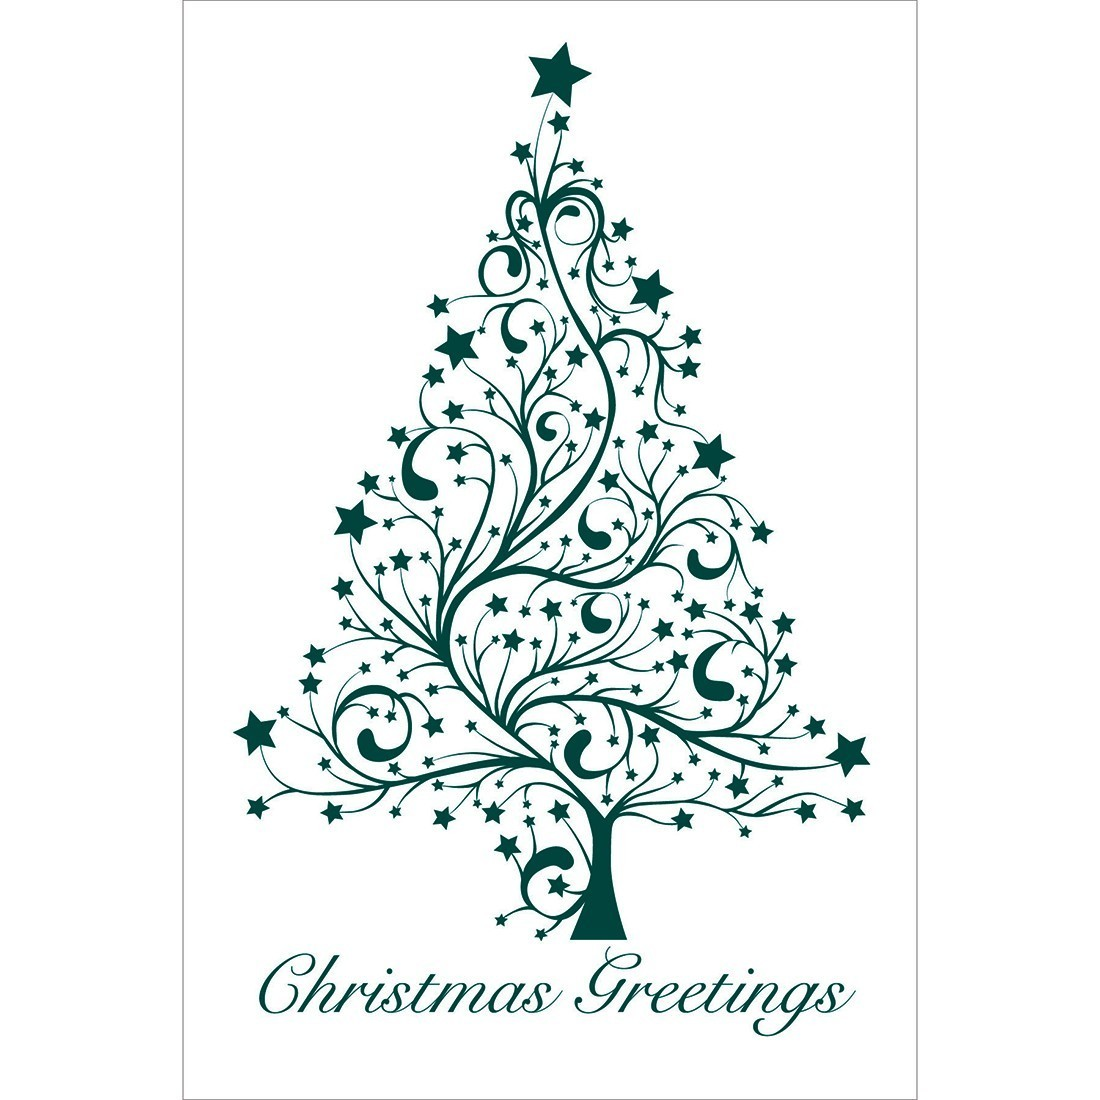 Christmas Greetings Tree Greeting Cards [image]